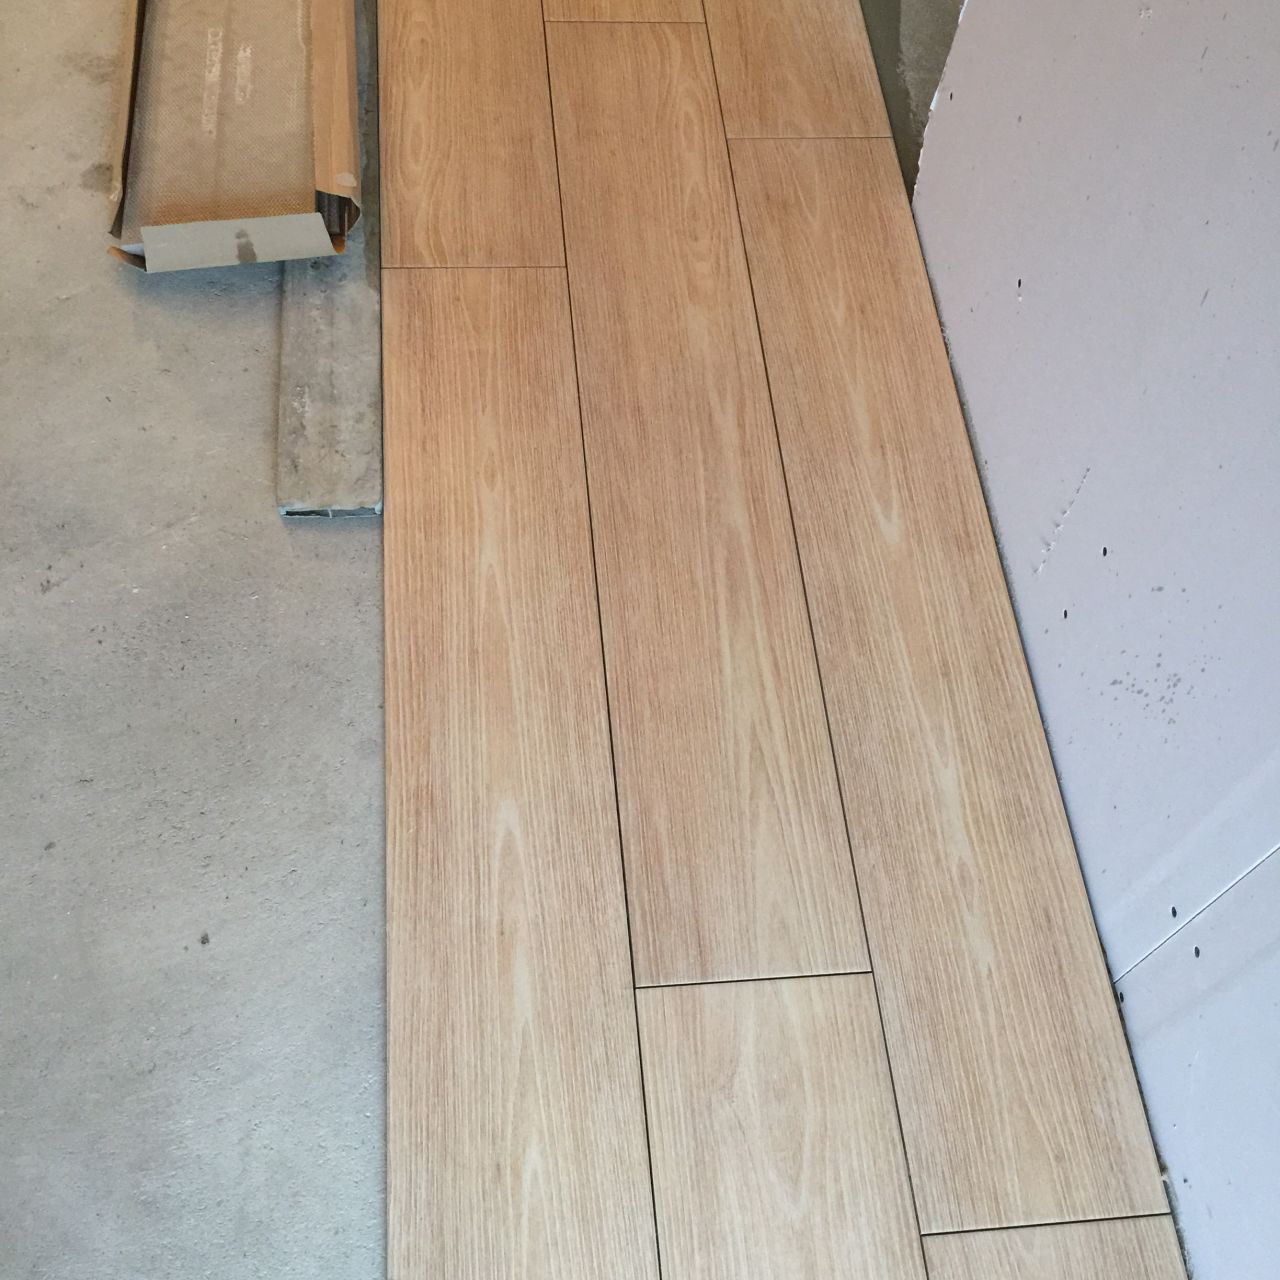 D marrage pose du carrelage avancement cloisons for Pose carrelage imitation parquet